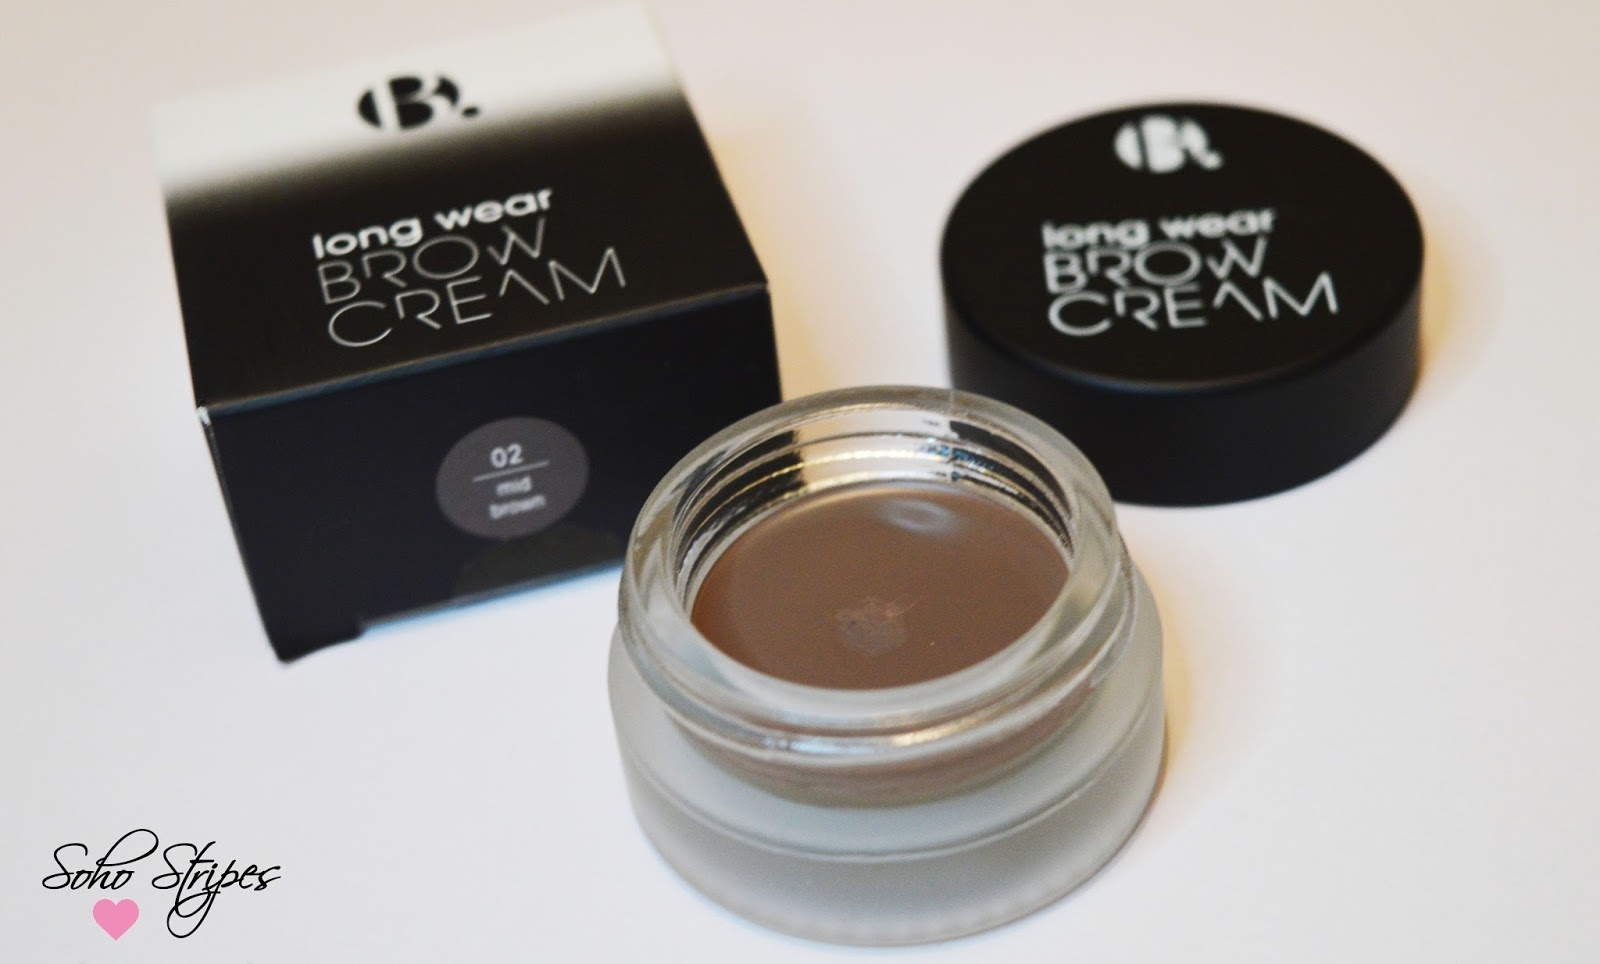 B. Long Wear Brow Cream